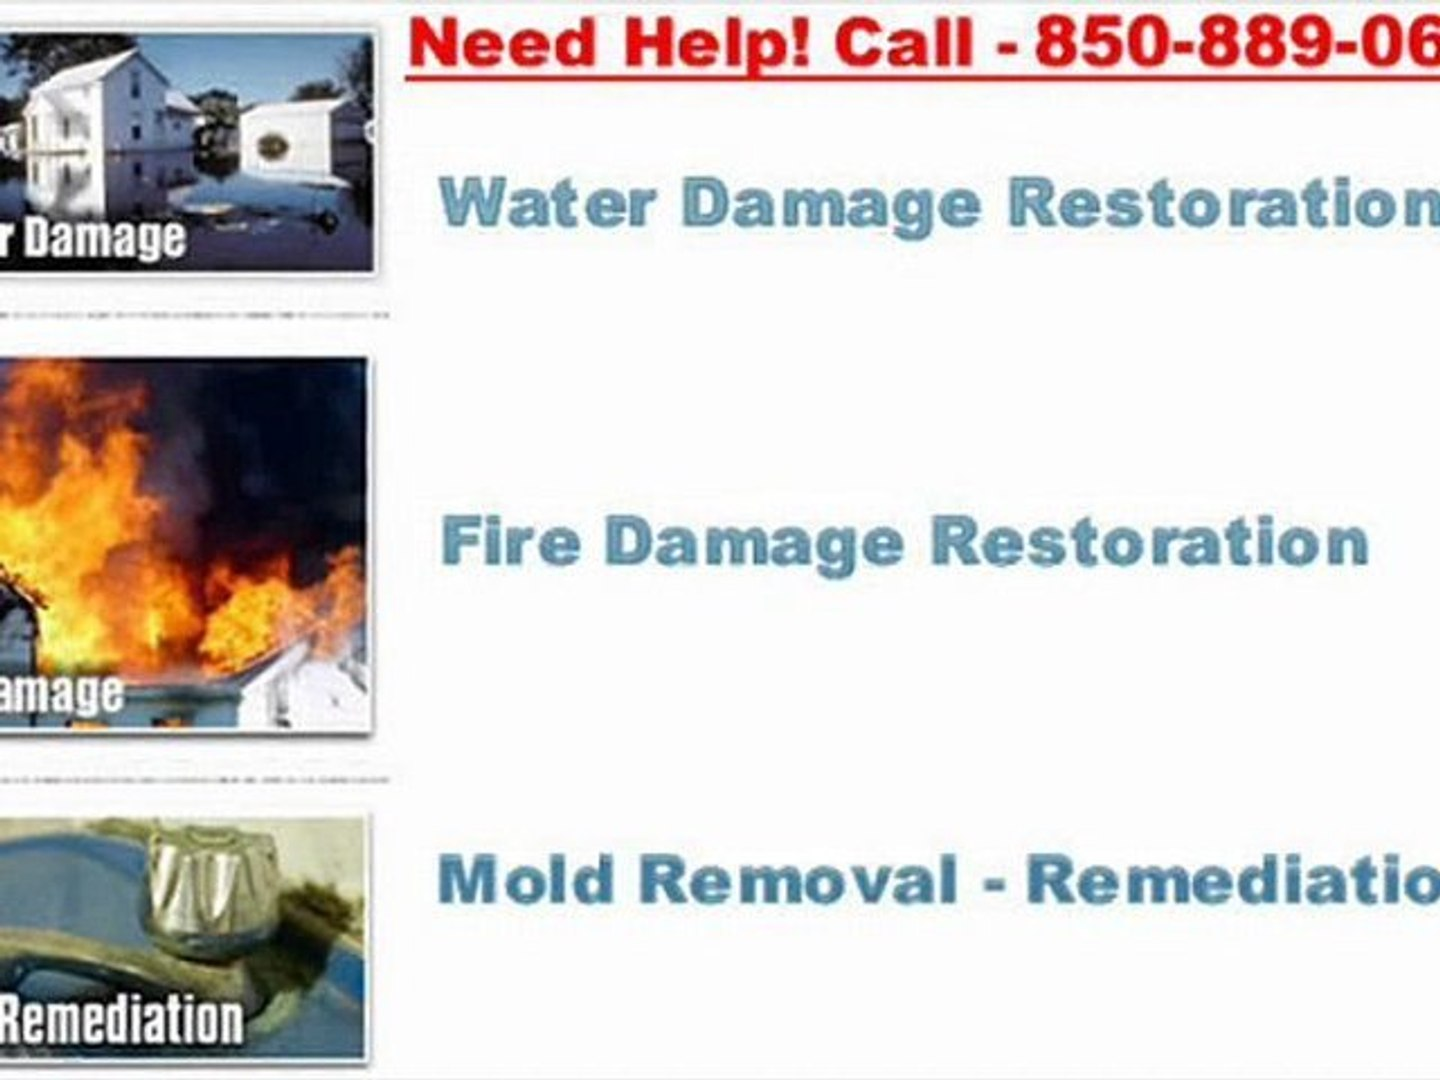 ServiceMaster Clean Pensacola FL - 850-889-0660 Fort Walton Beach Water and Fire Damage Restoration